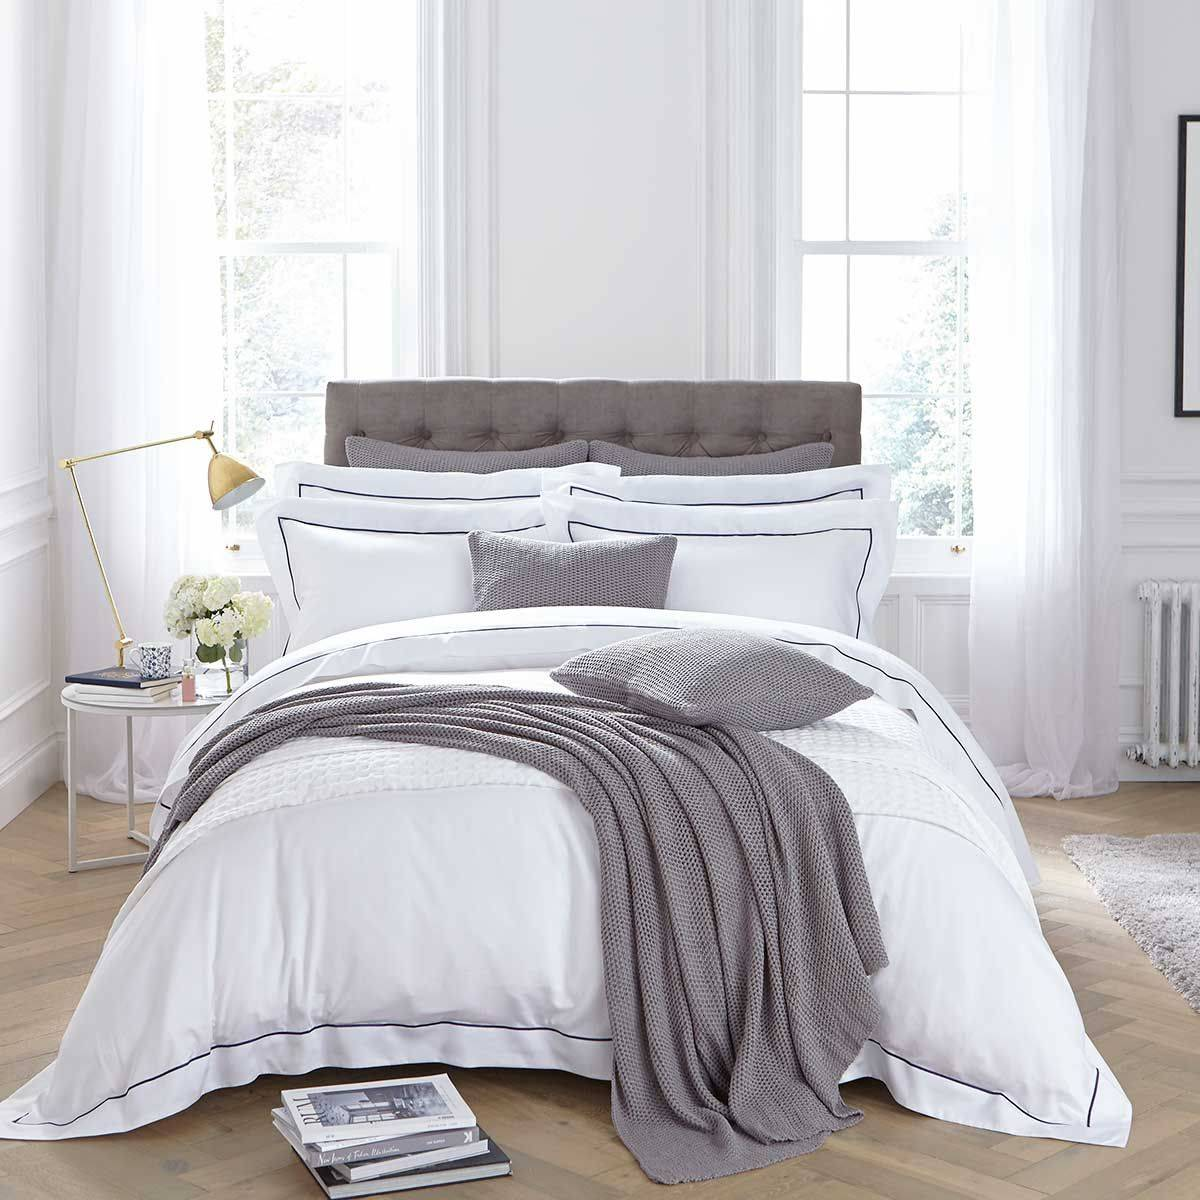 Tips To Care For Your Bed Linen